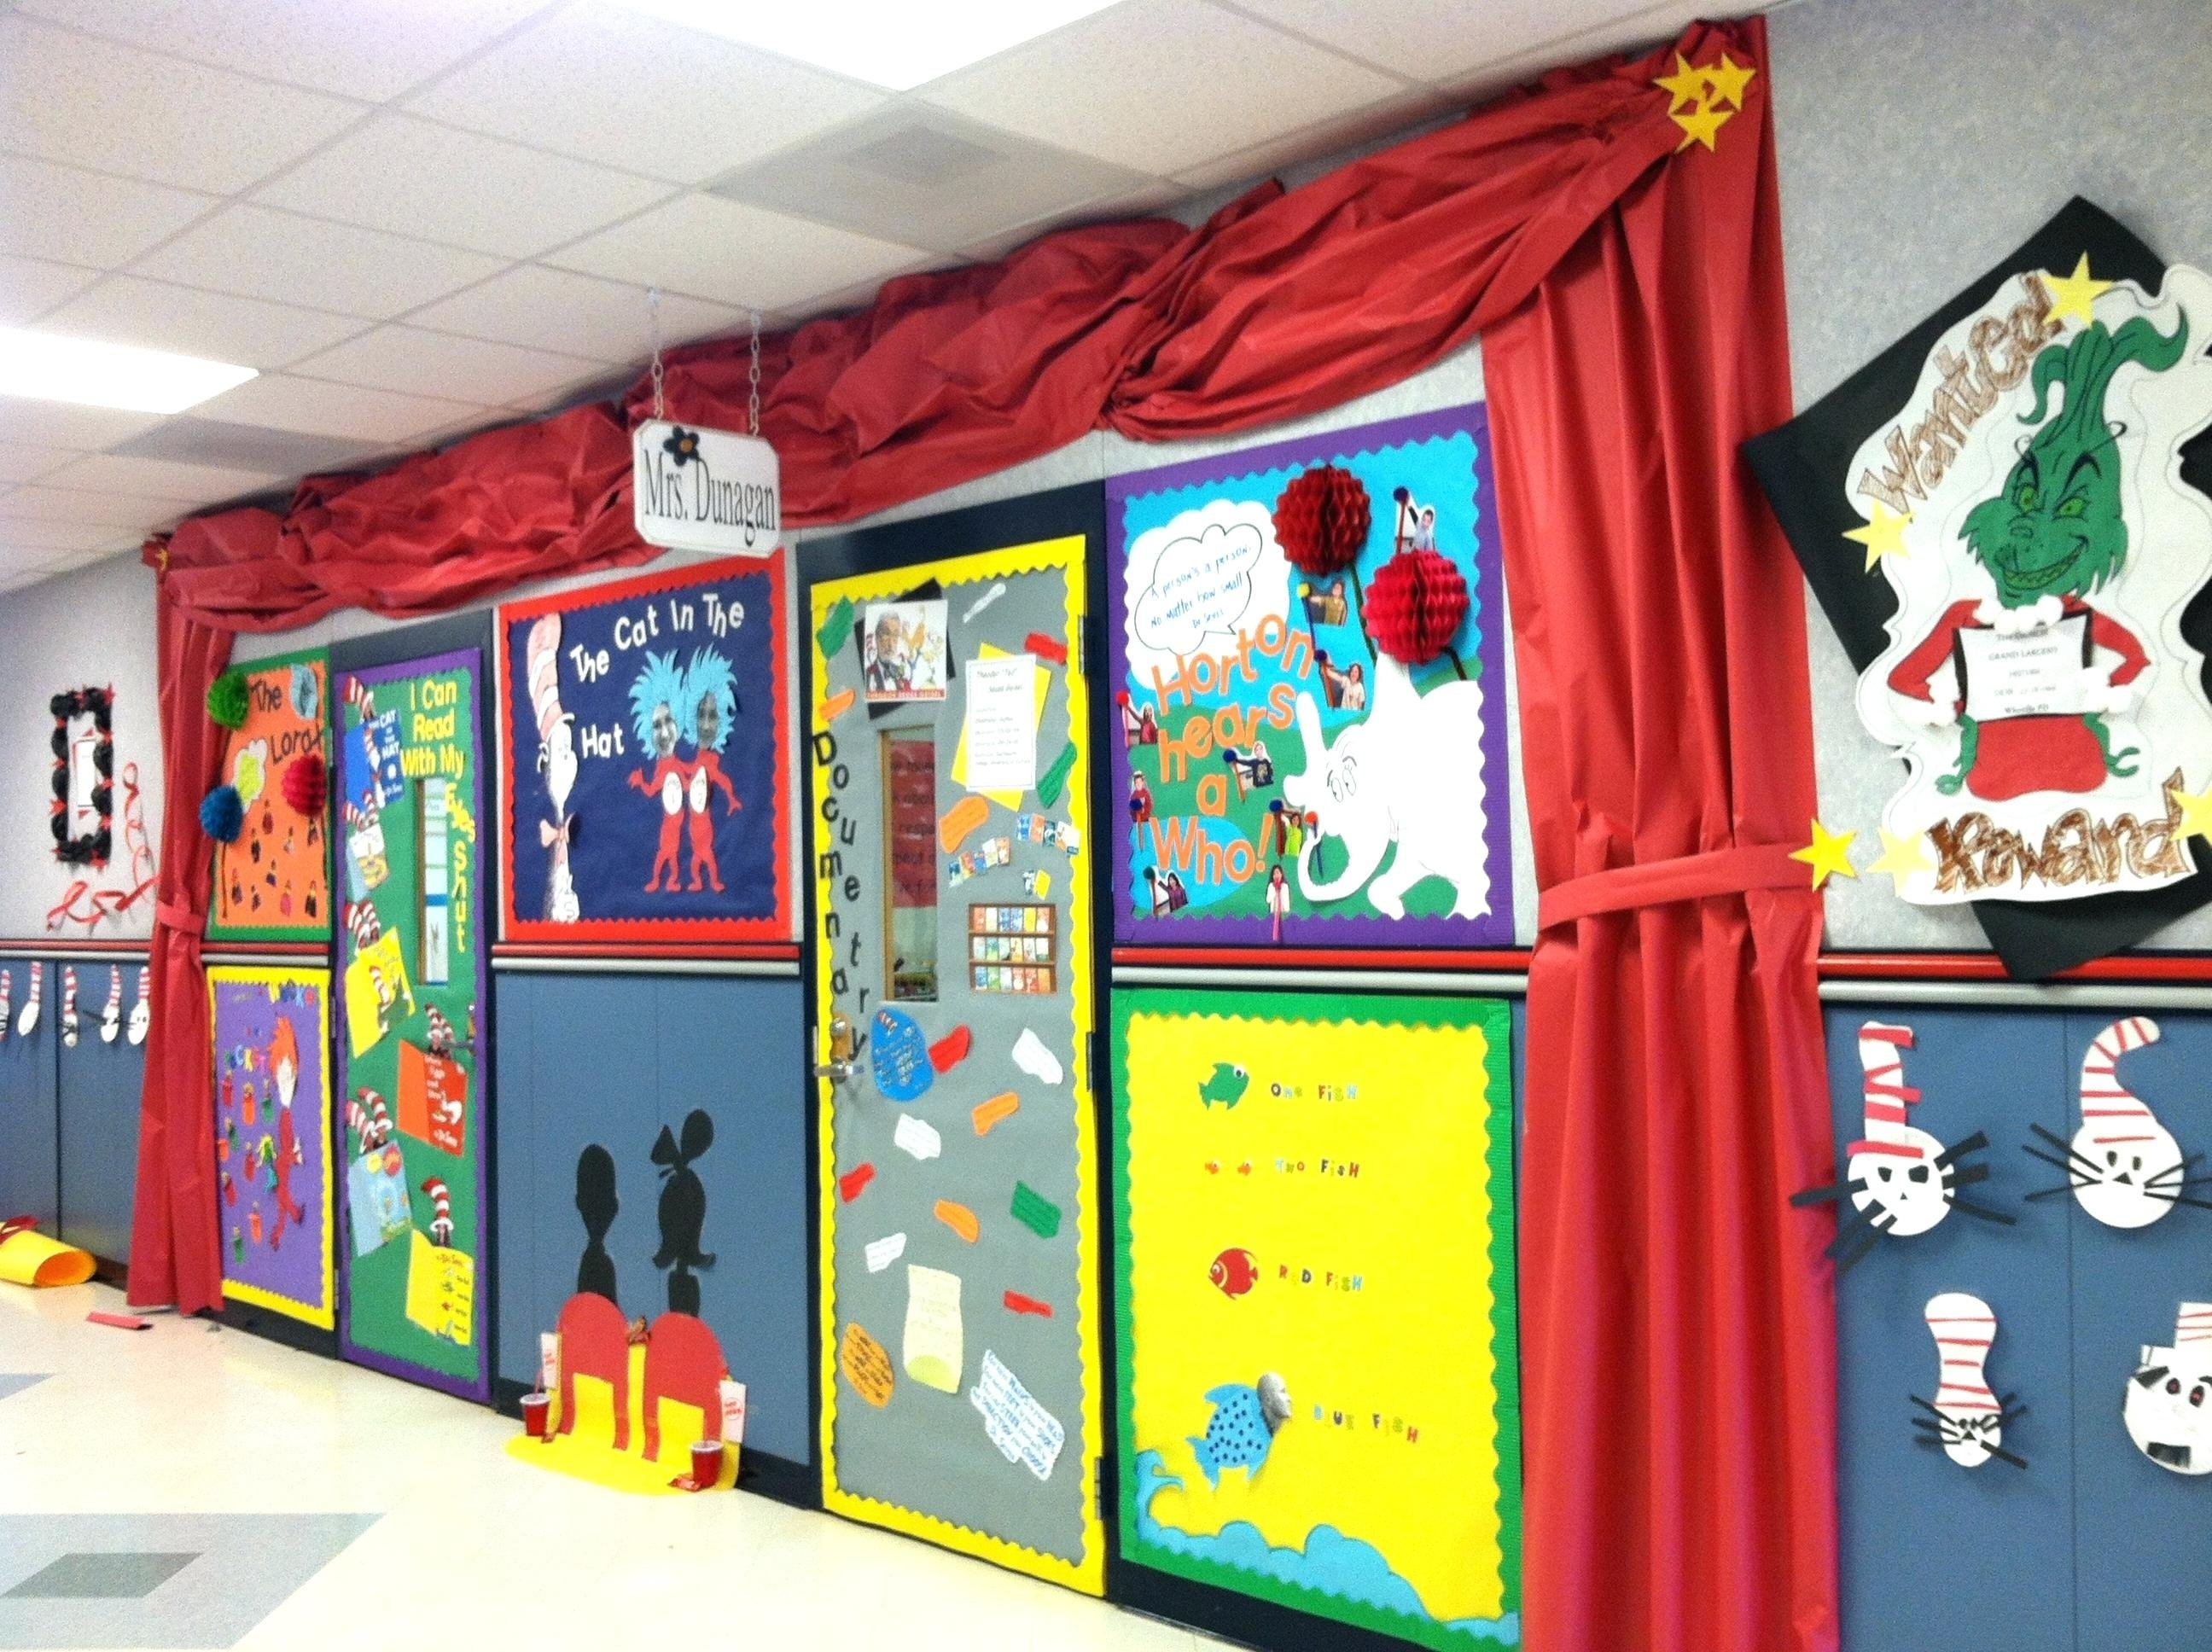 10 Attractive Dr. Seuss Decorating Ideas For Classroom bedroom ideas image of dr seuss decorations bedroom space trendy 2020